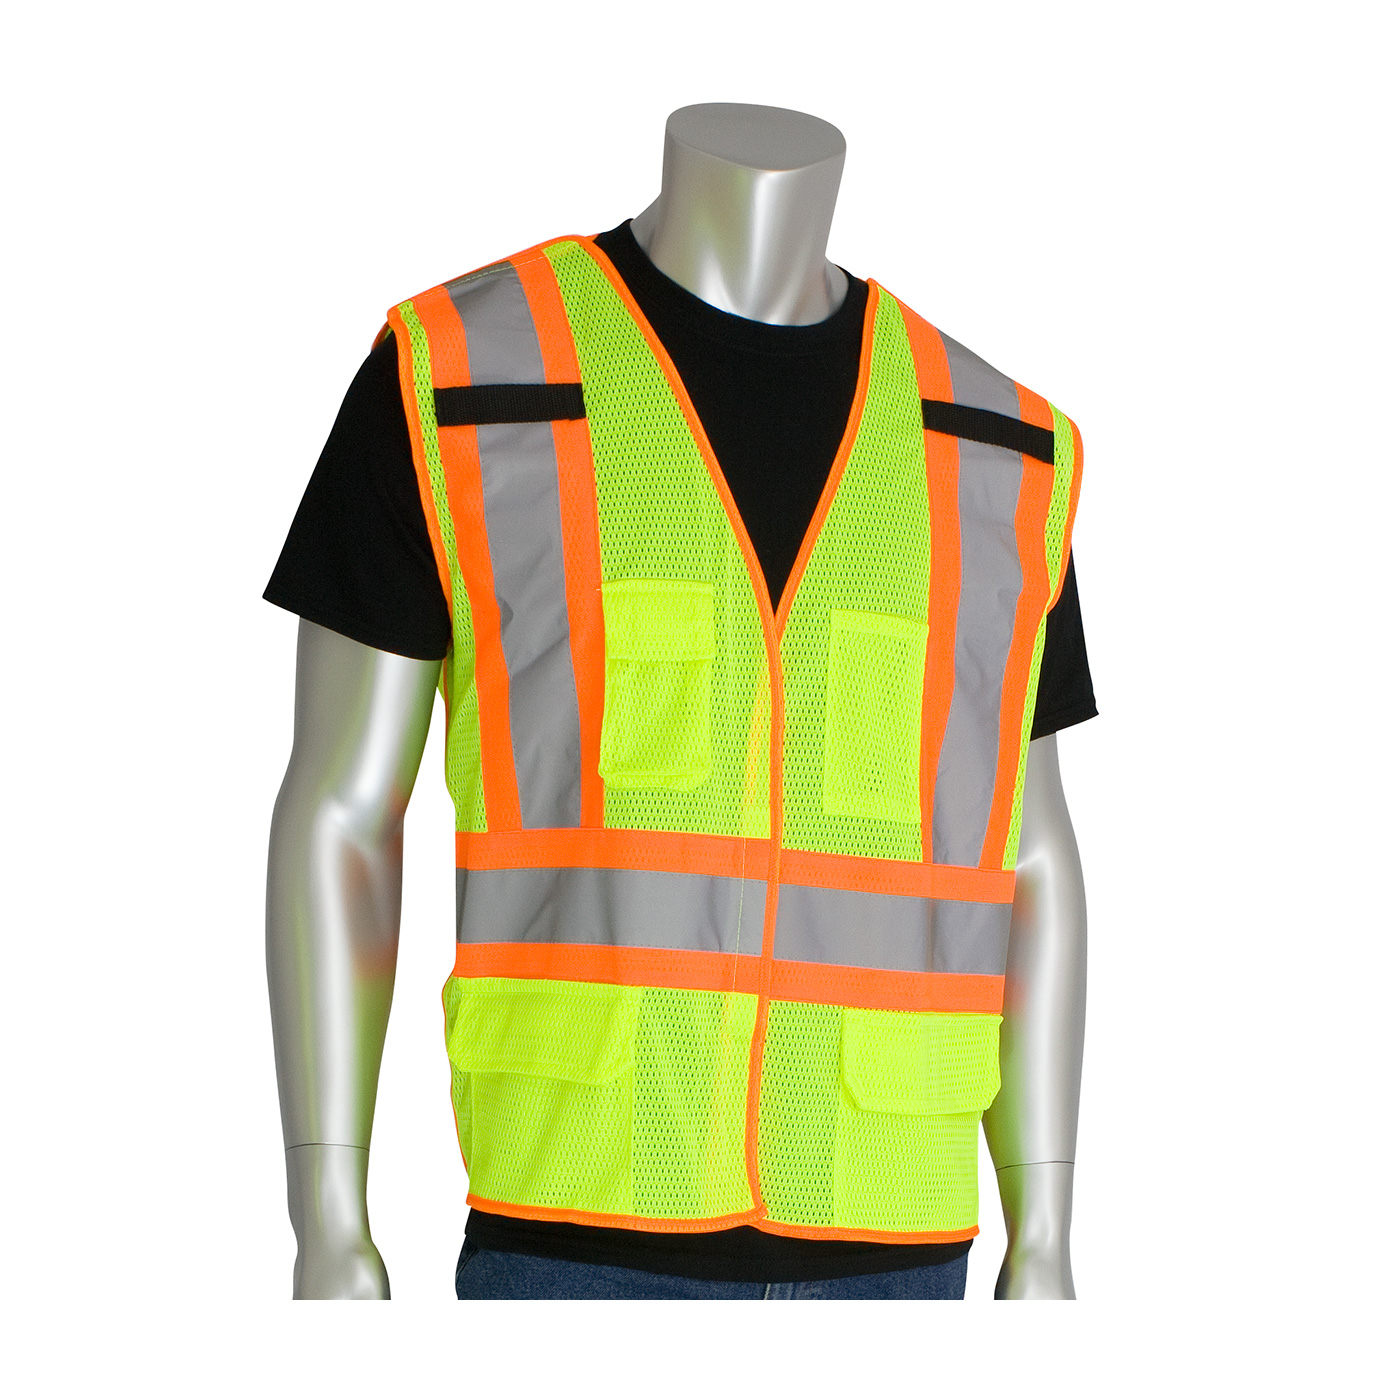 PIP® ANSI Type R Class 2 Two-Tone Breakaway Mesh Vest w/ 5 pockets #302-0212-LY